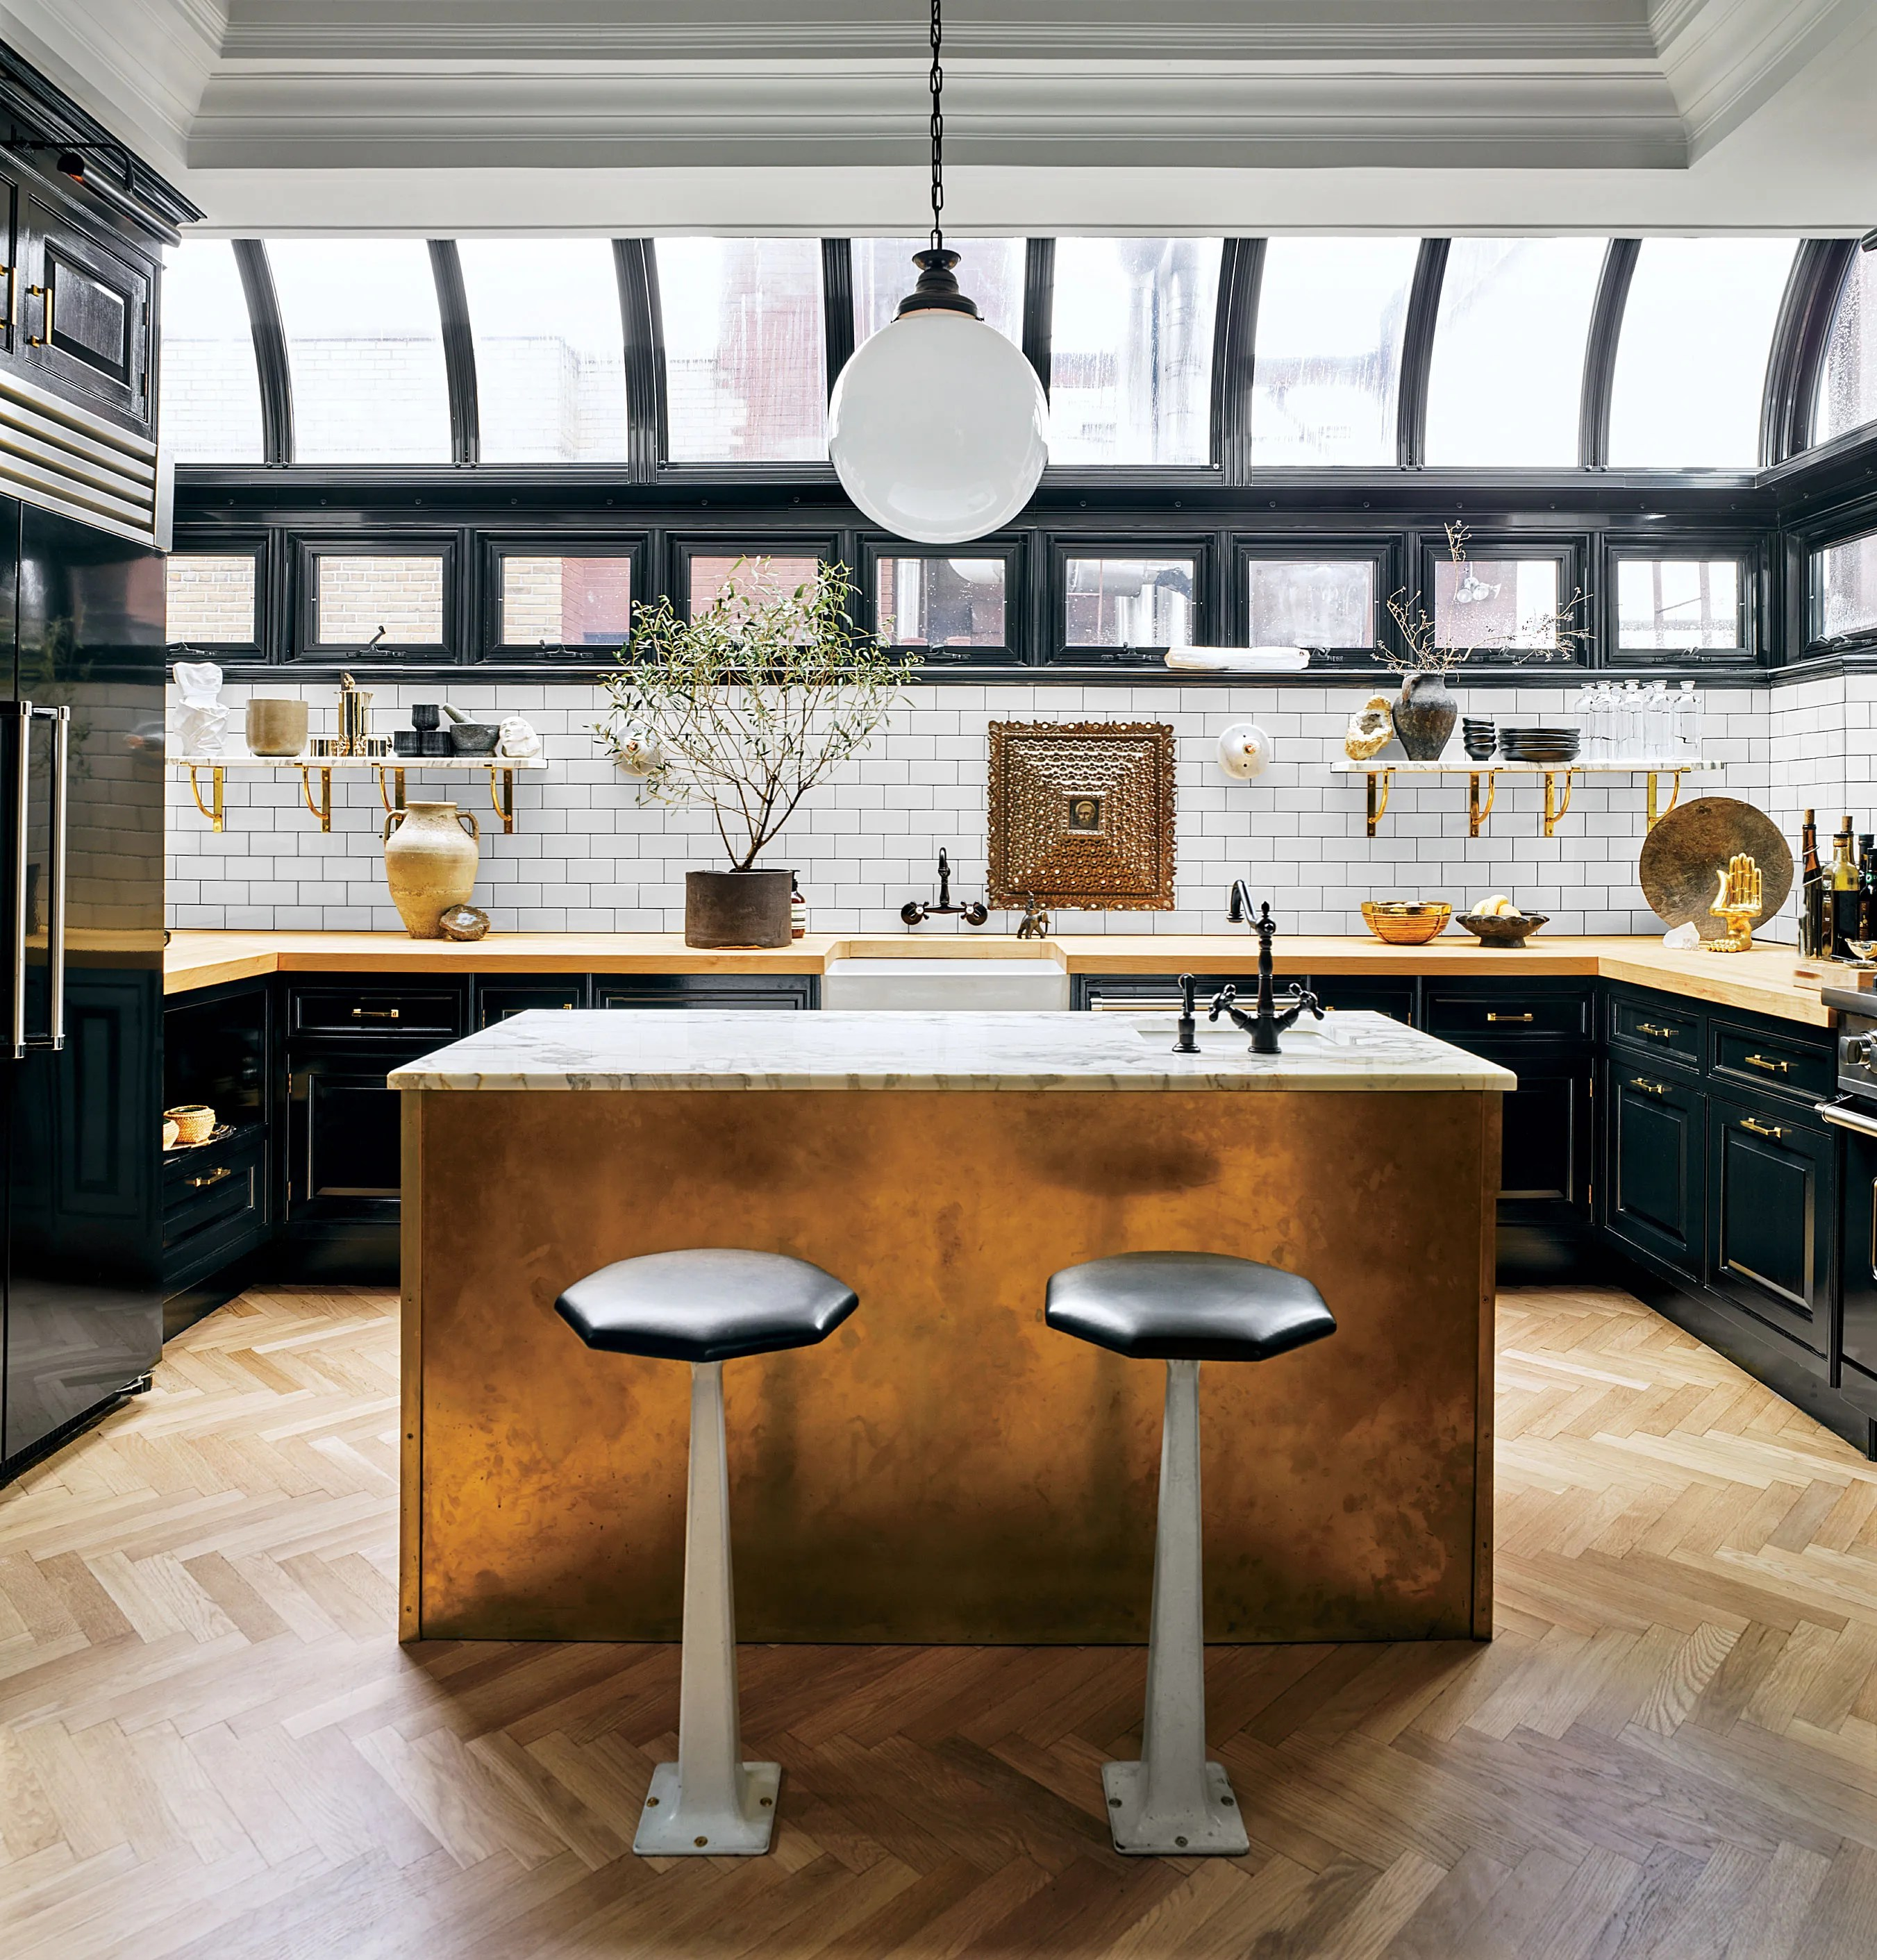 These 20 Black Kitchens Make a Stylish Impact Photos   Architectural     These 20 Black Kitchens Make a Stylish Impact Photos   Architectural Digest